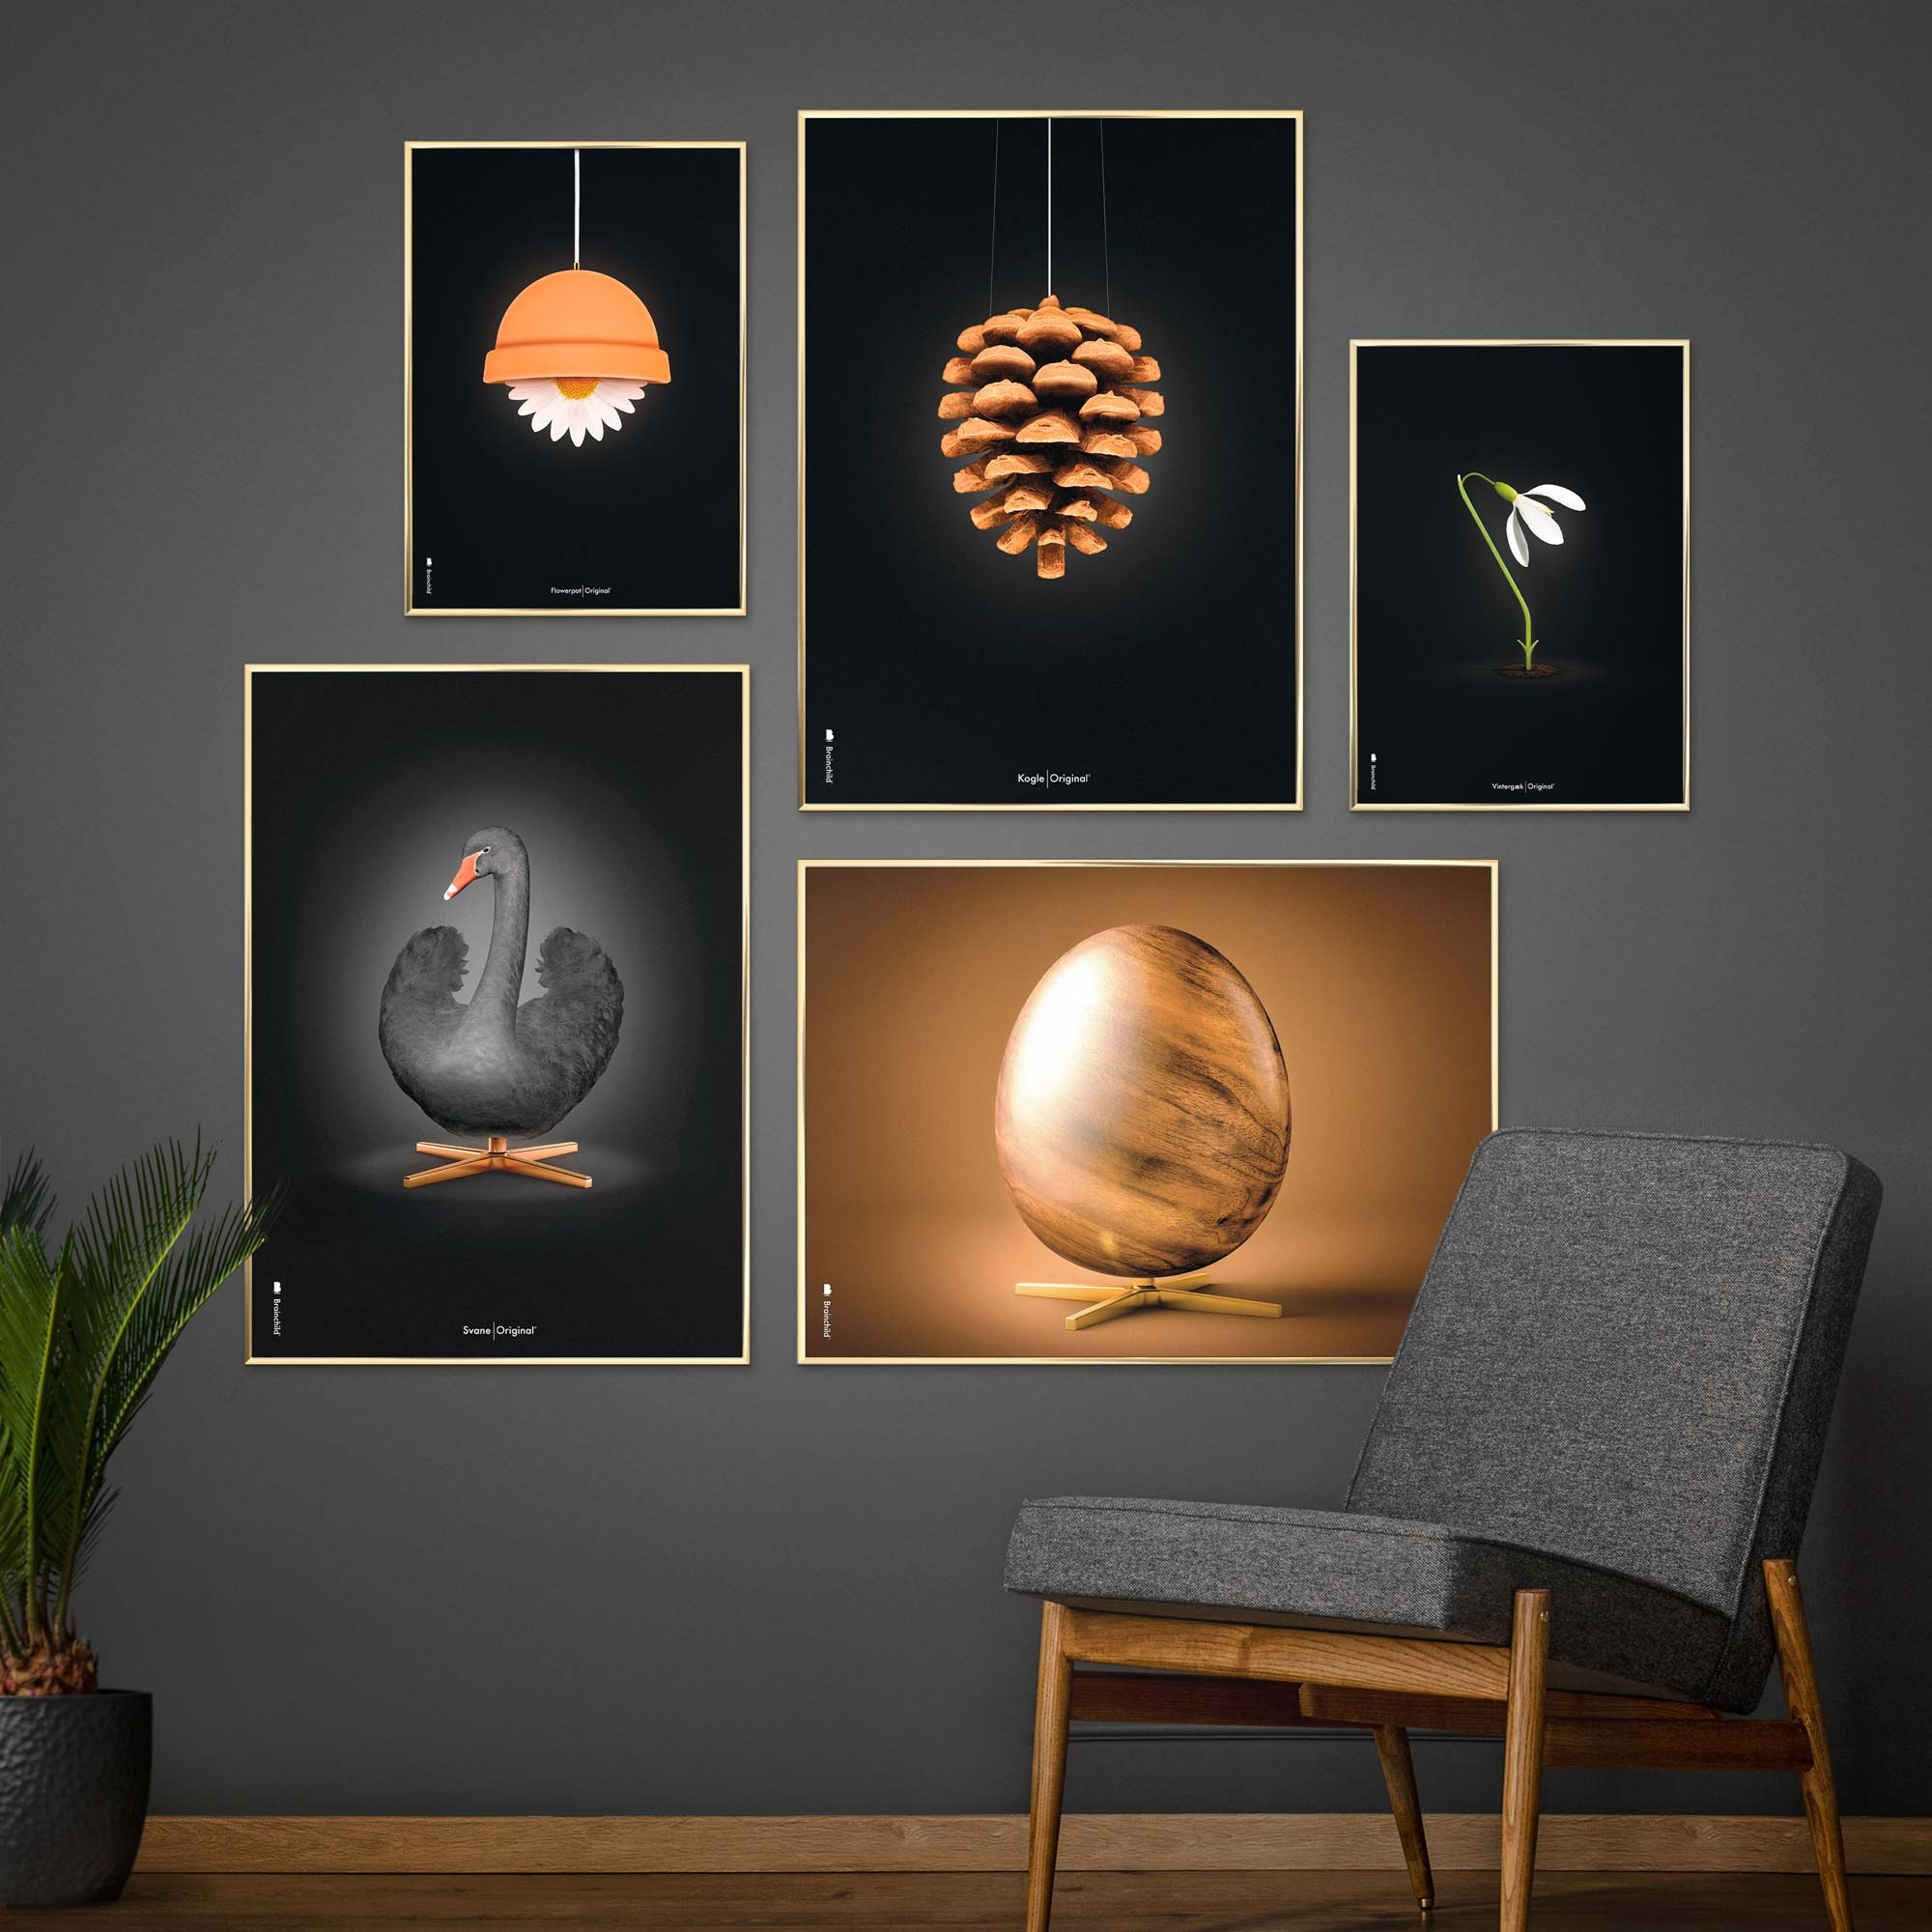 Picture wall with Brainchild posters, 50x70 and 30x40 cm.